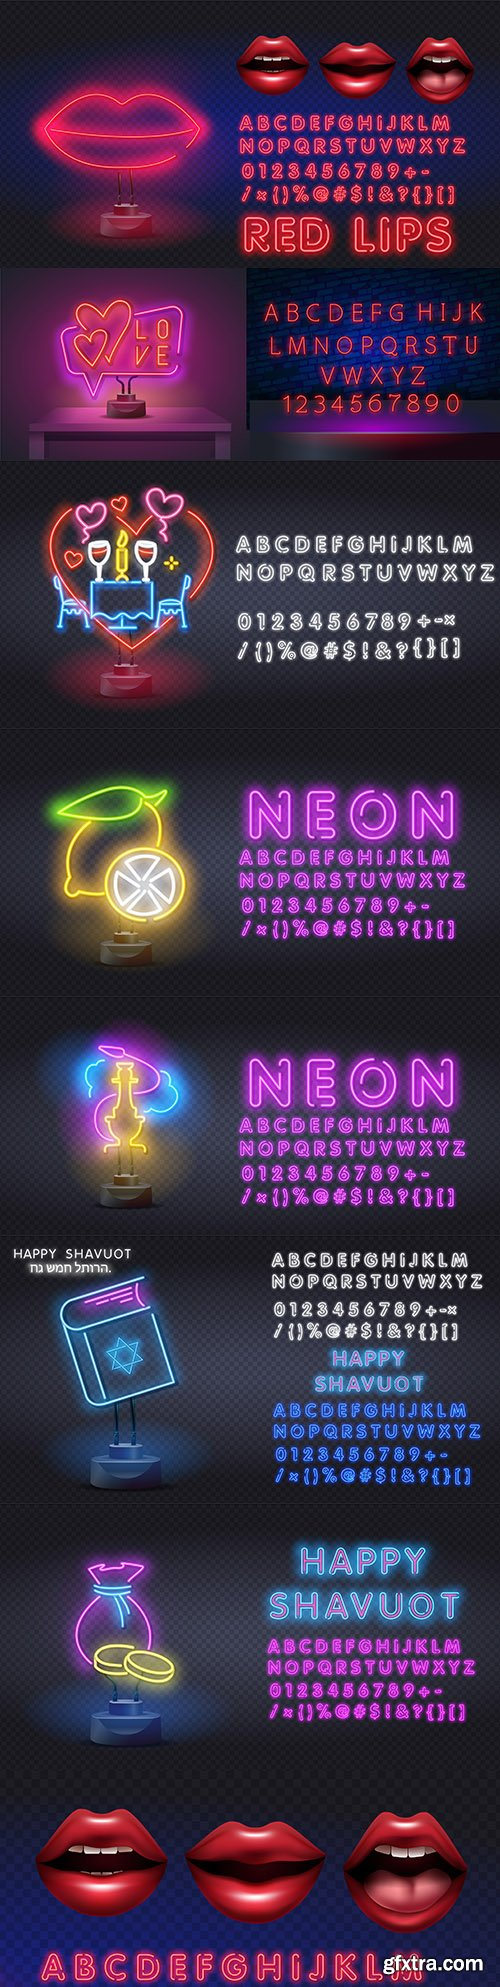 Neon style logo and signage with decorative fon